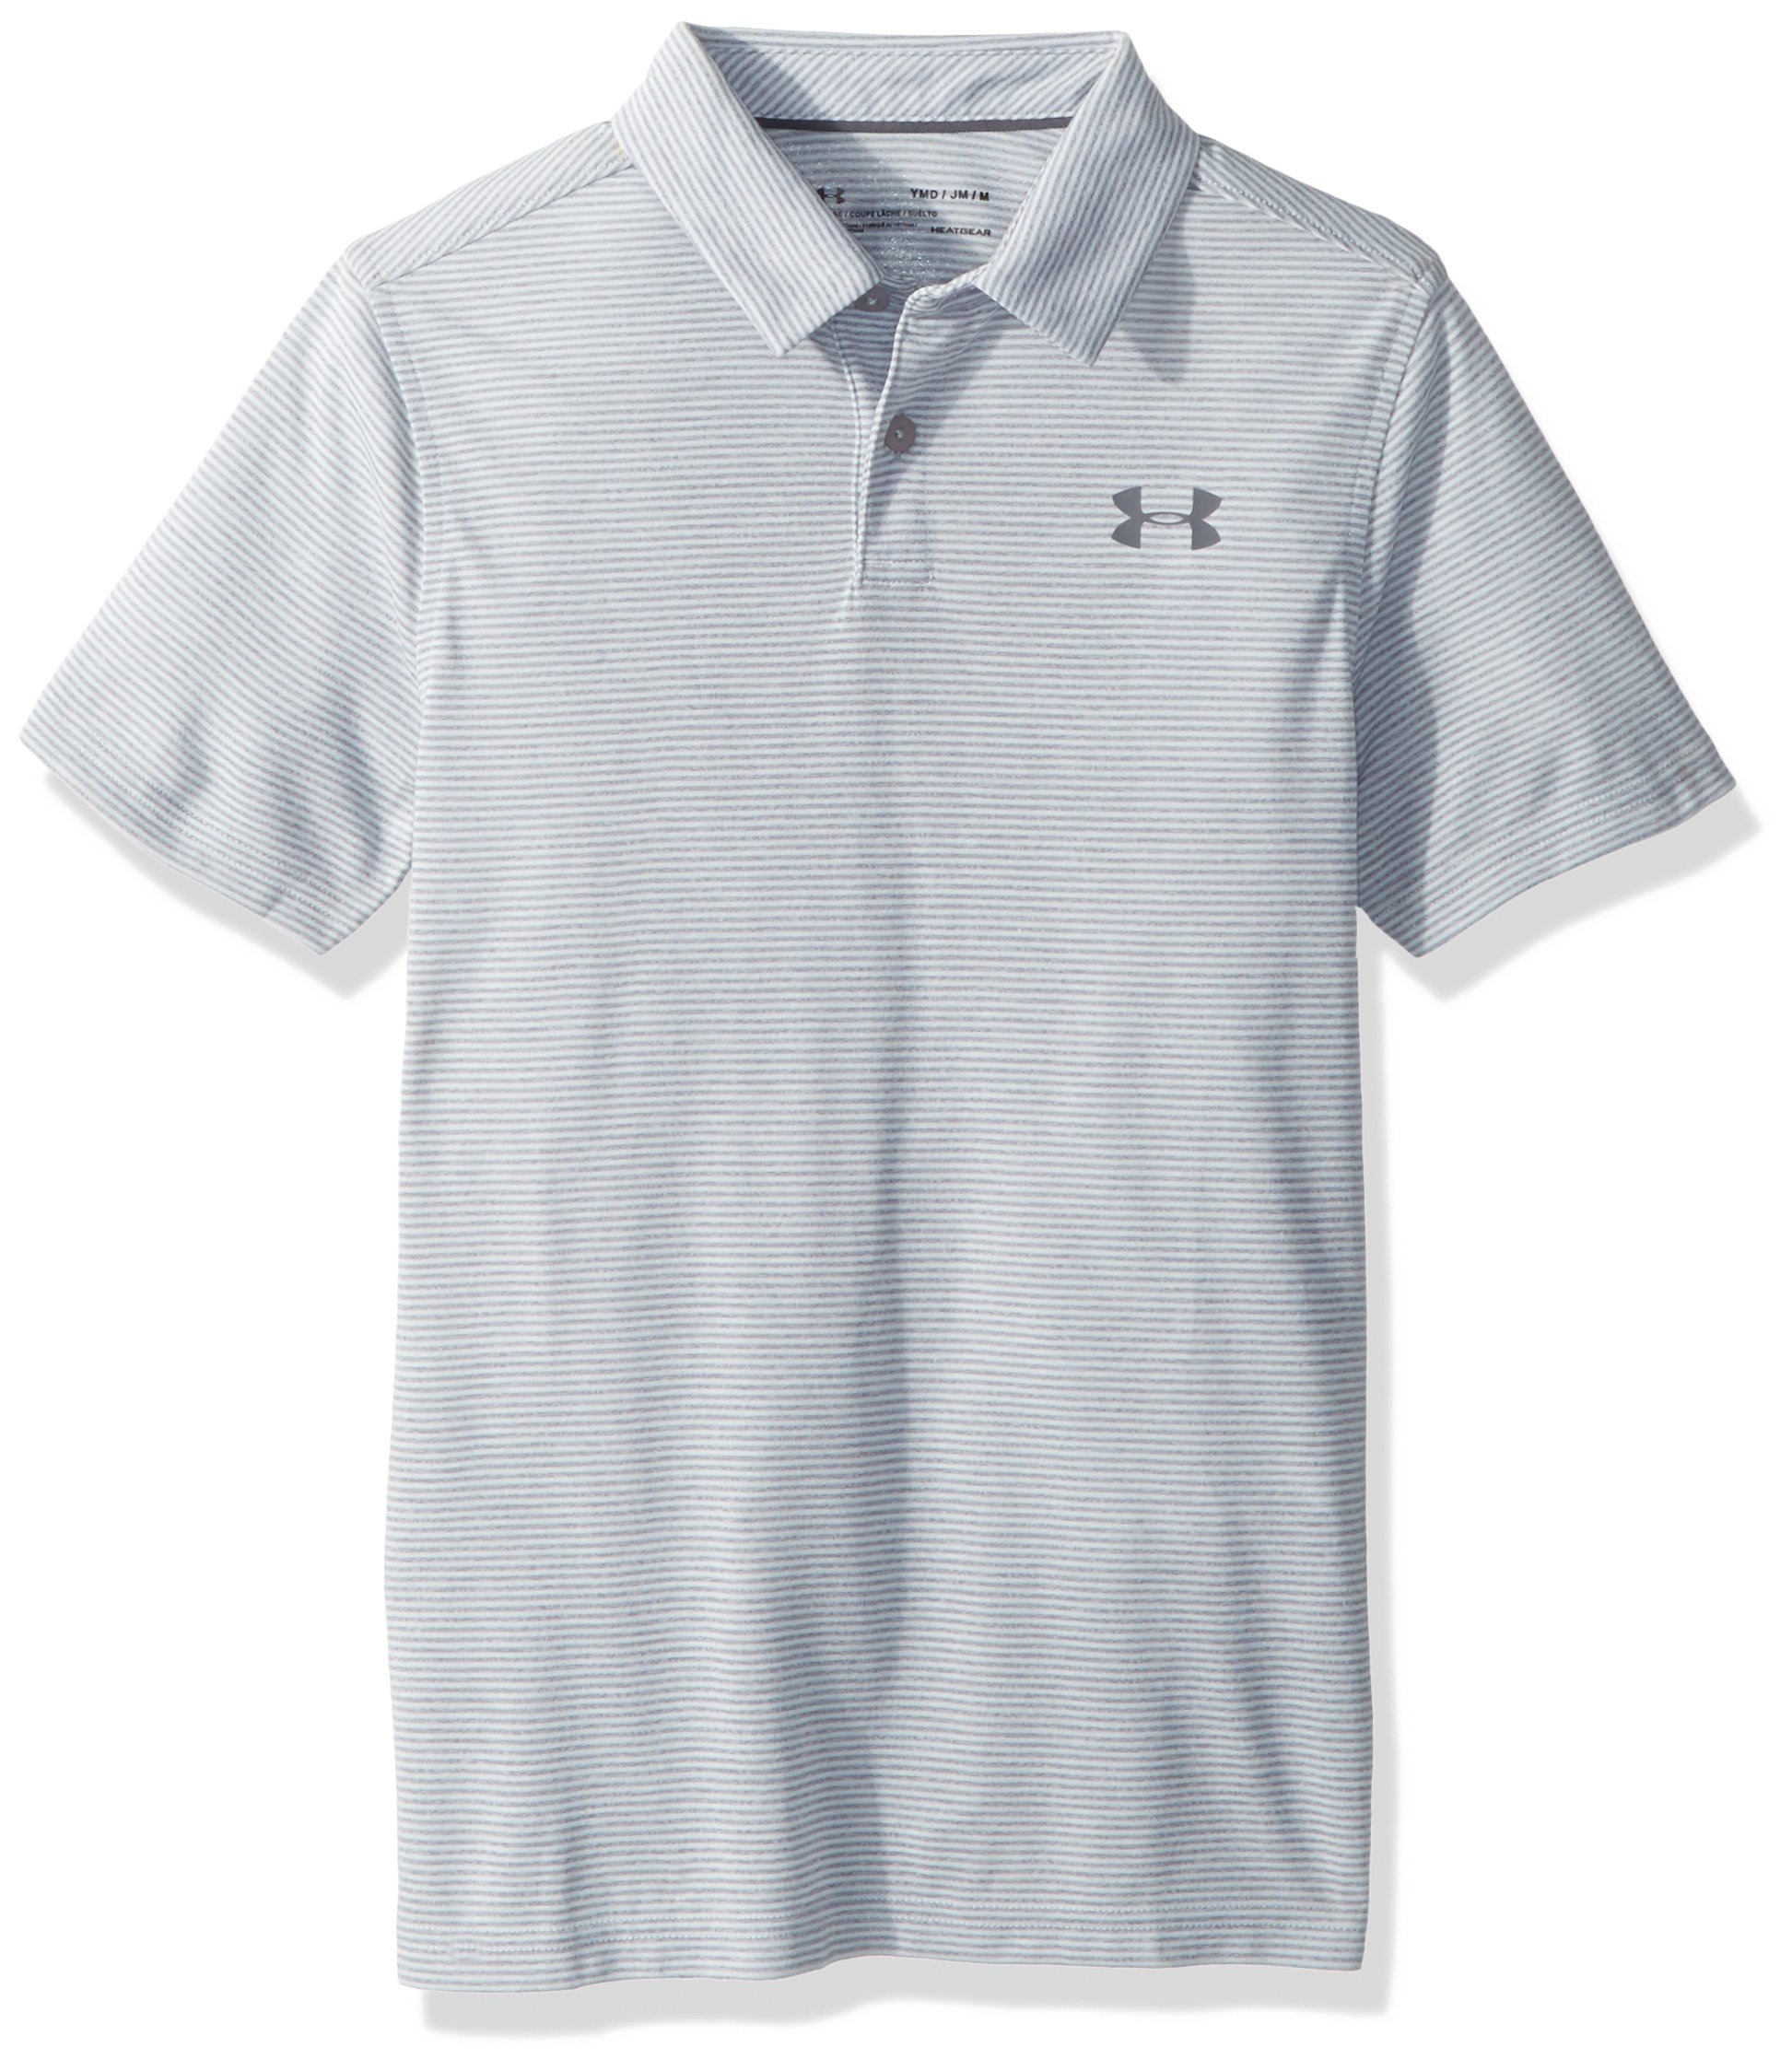 Under Armour Boys' Threadborne Polo, Overcast Gray (941)/Rhino Gray, Youth X-Large by Under Armour